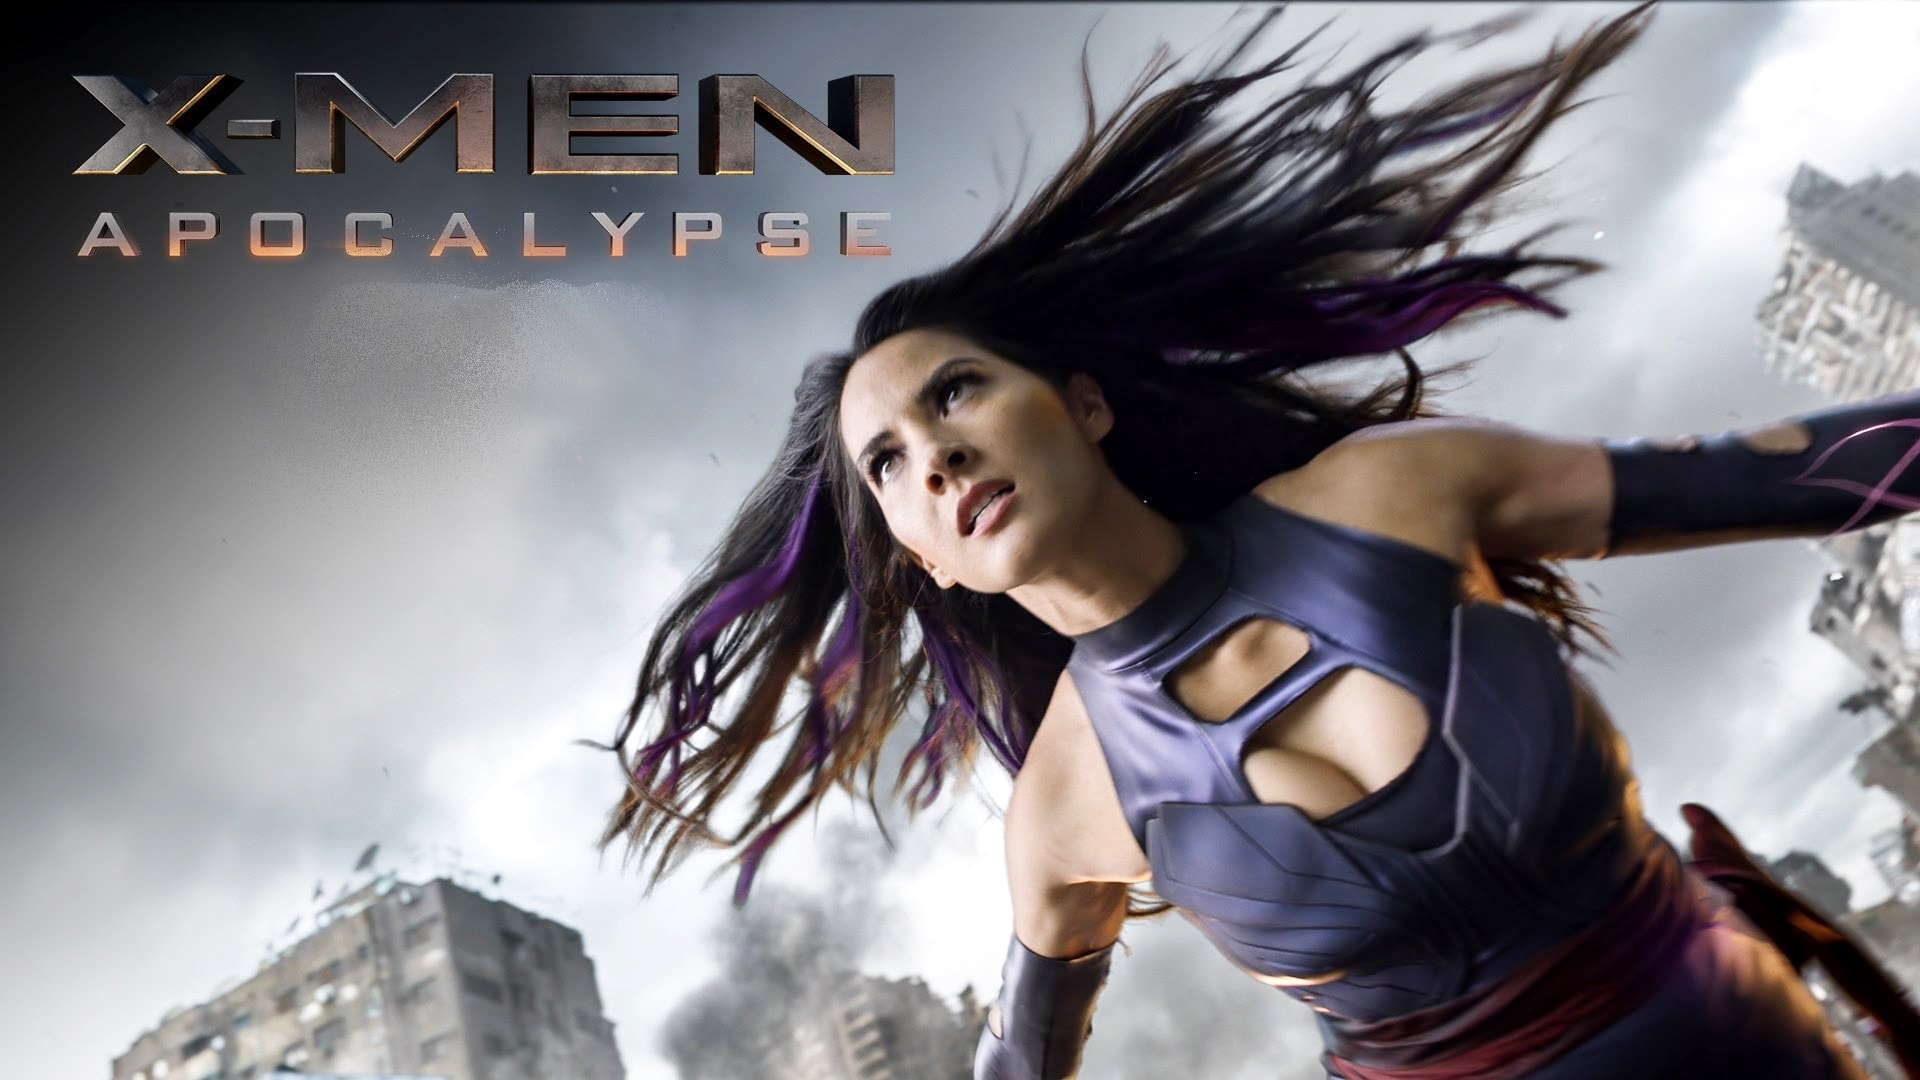 X-Men: Apocalypse widescreen for desktop